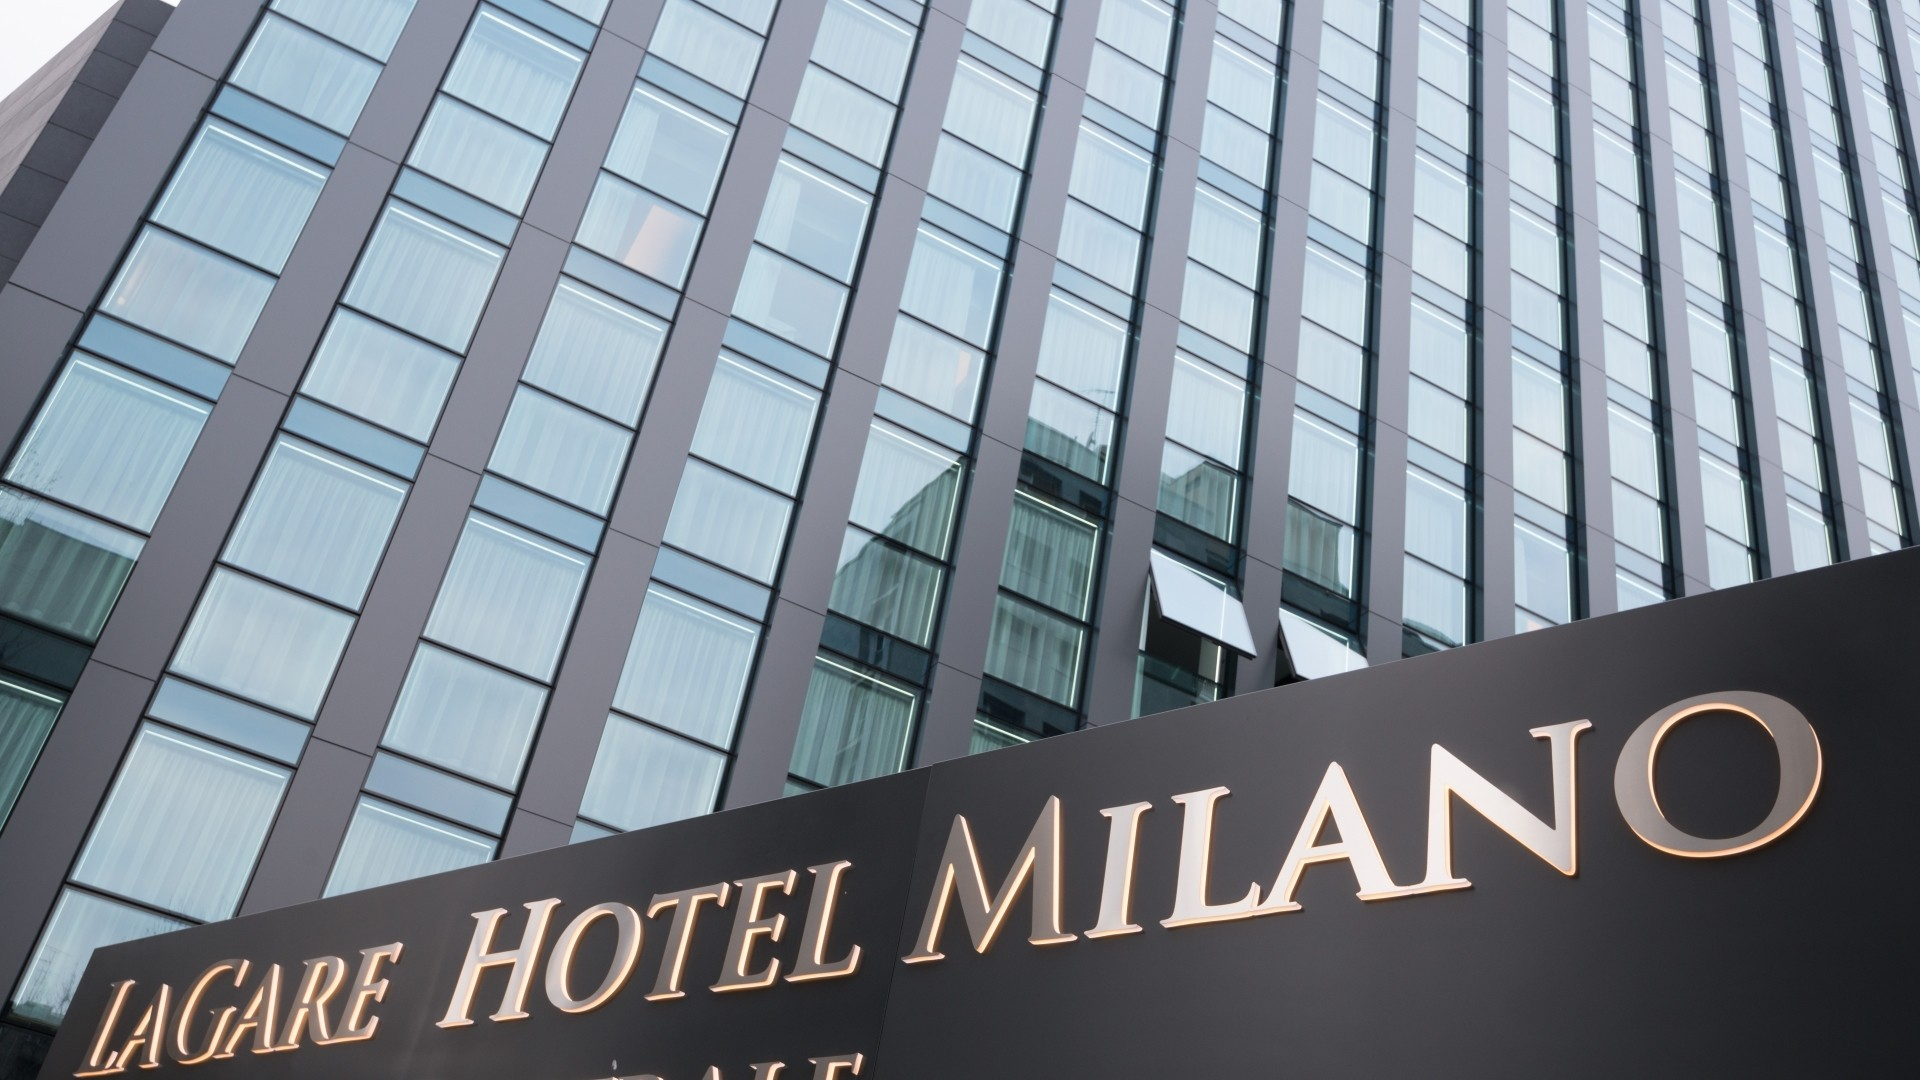 Marconi hotel milan italy for Hotel marconi milano